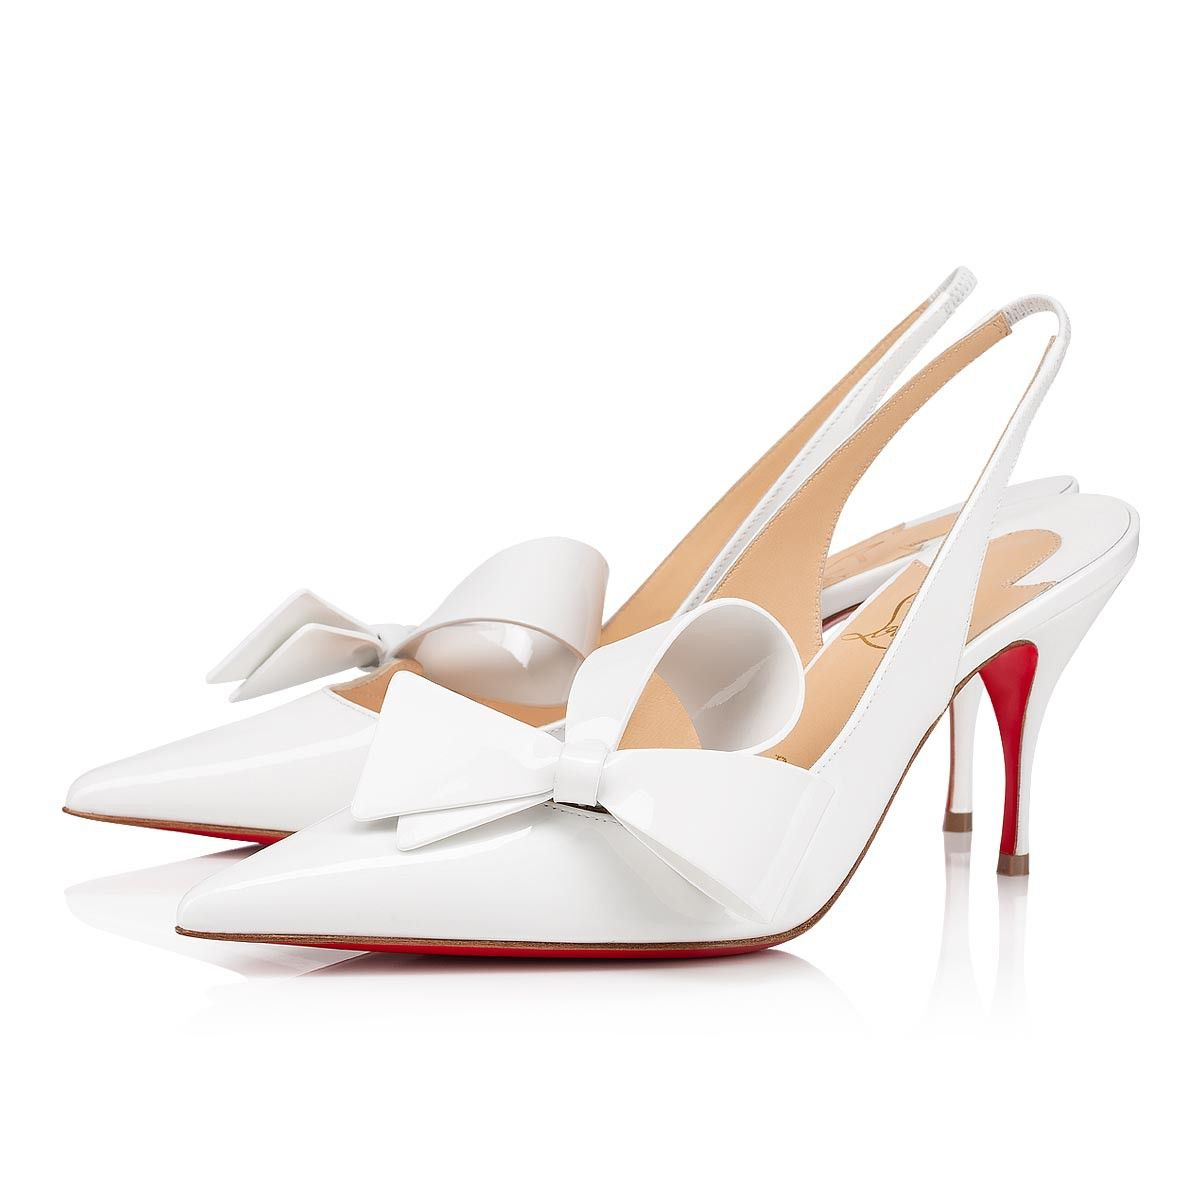 pump. Crafted in white patent leather